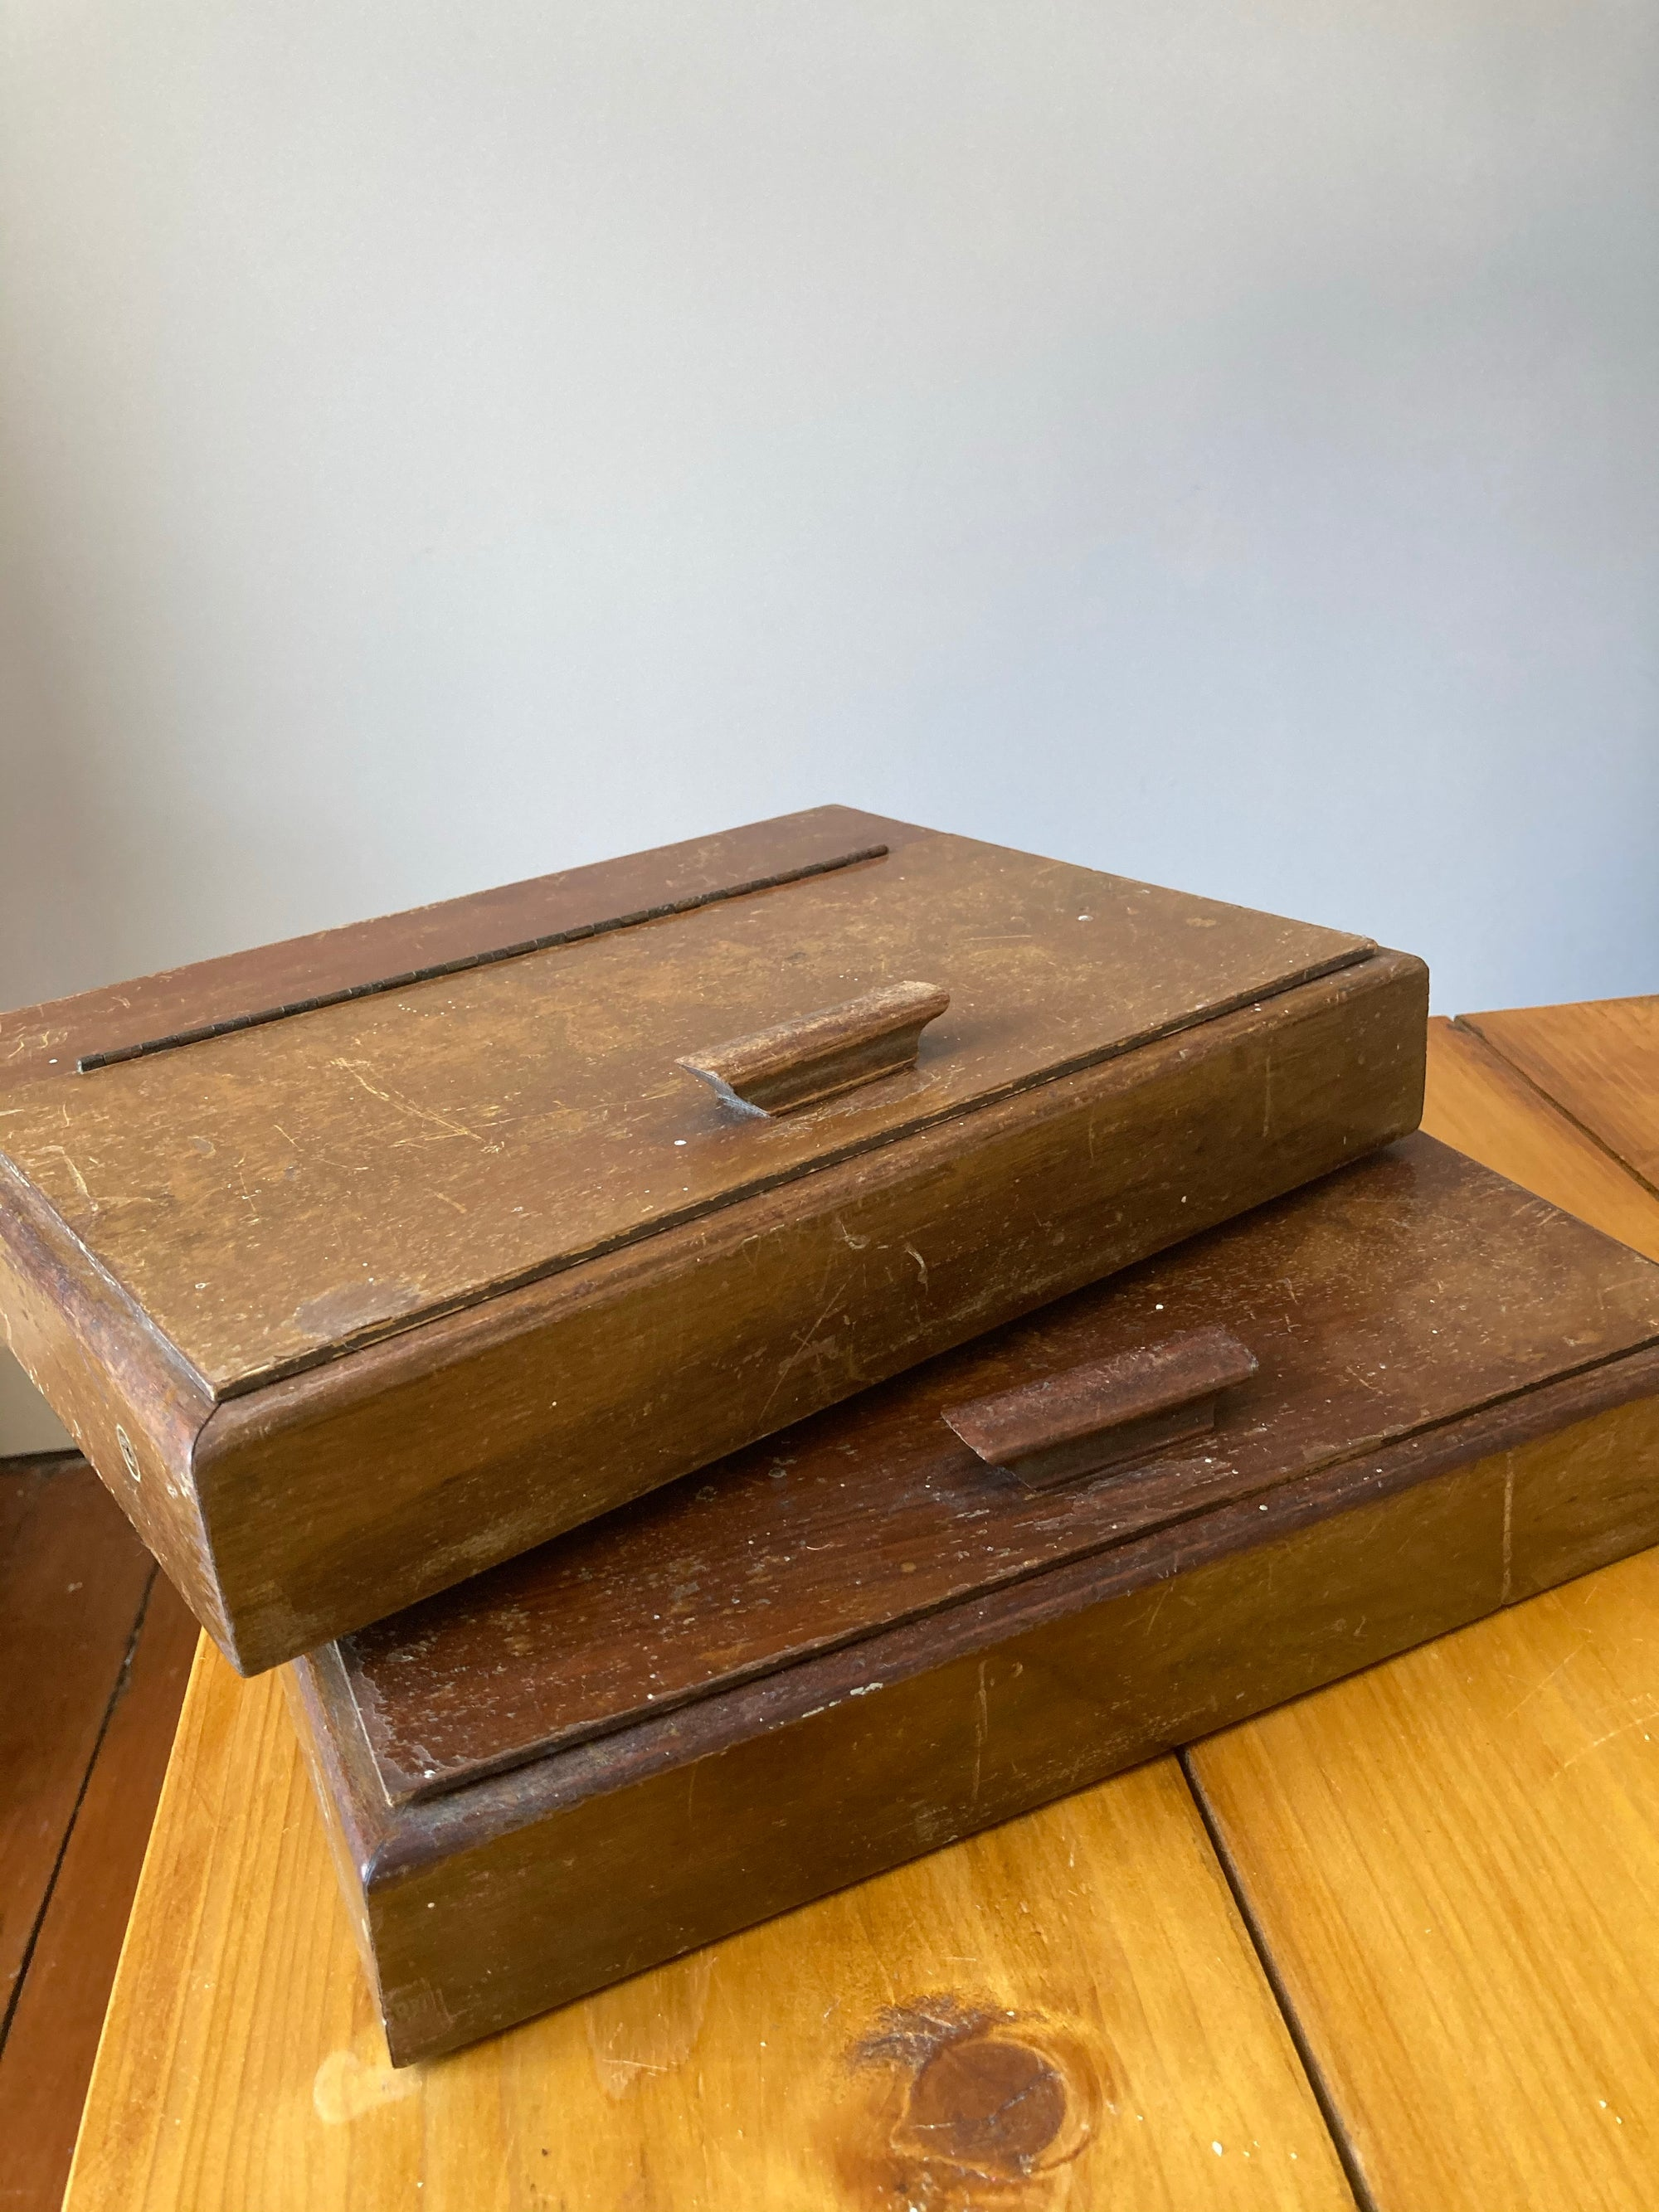 Wooden boxes with lid